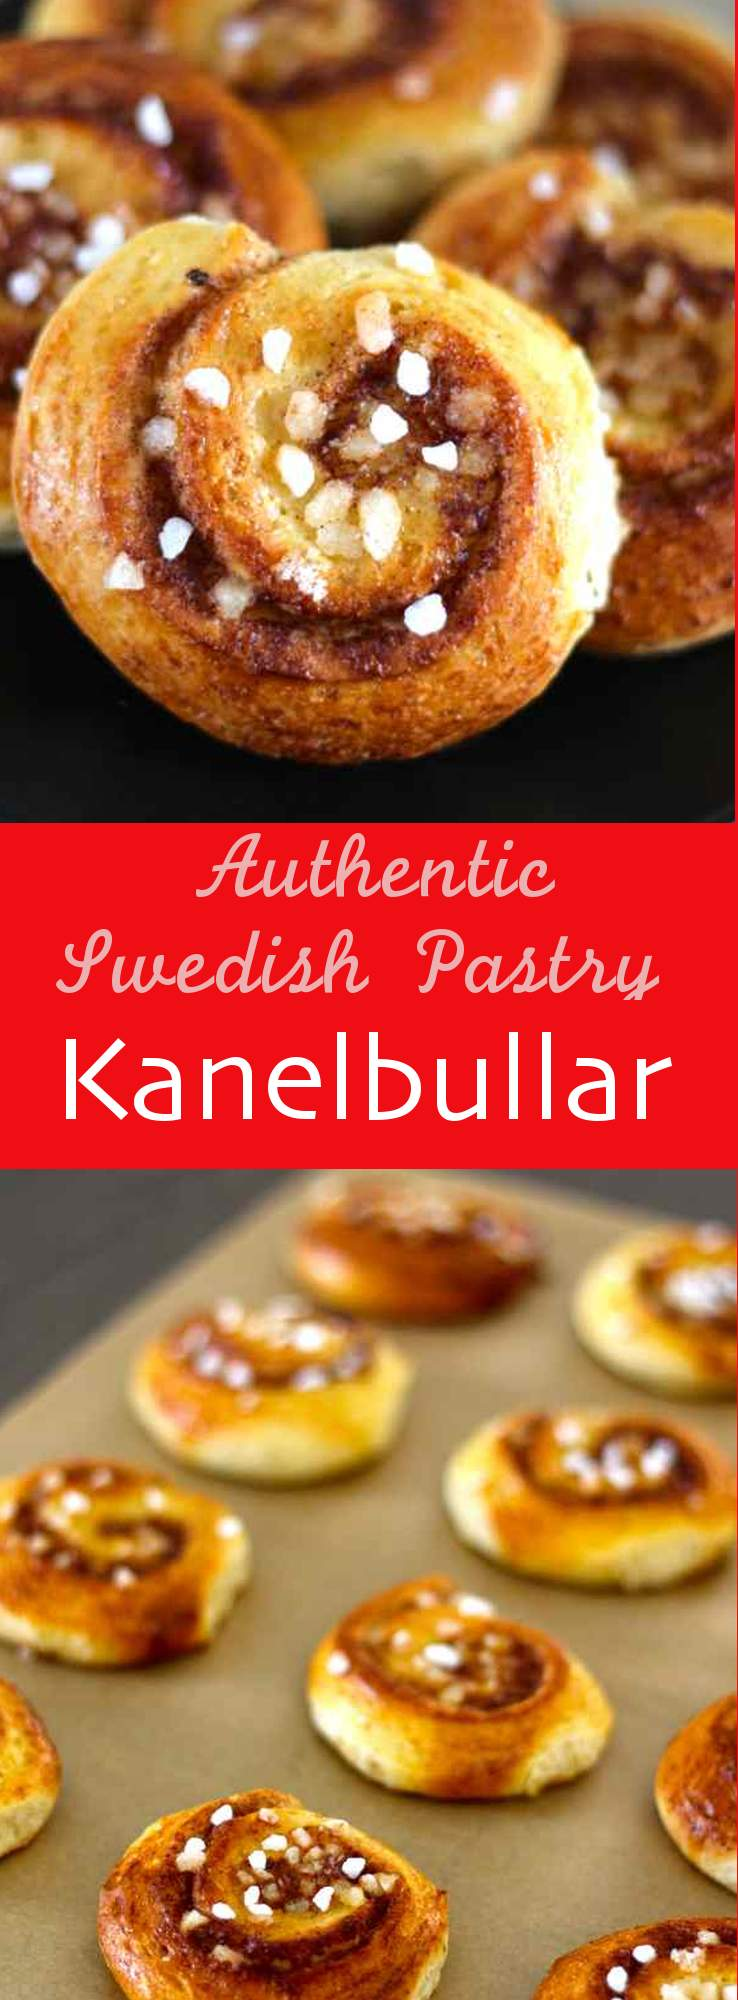 Kanelbullar are traditional little Swedish buns that are topped with softened butter, sugar and cinnamon. #vegetarian #dessert #swedish #sweden